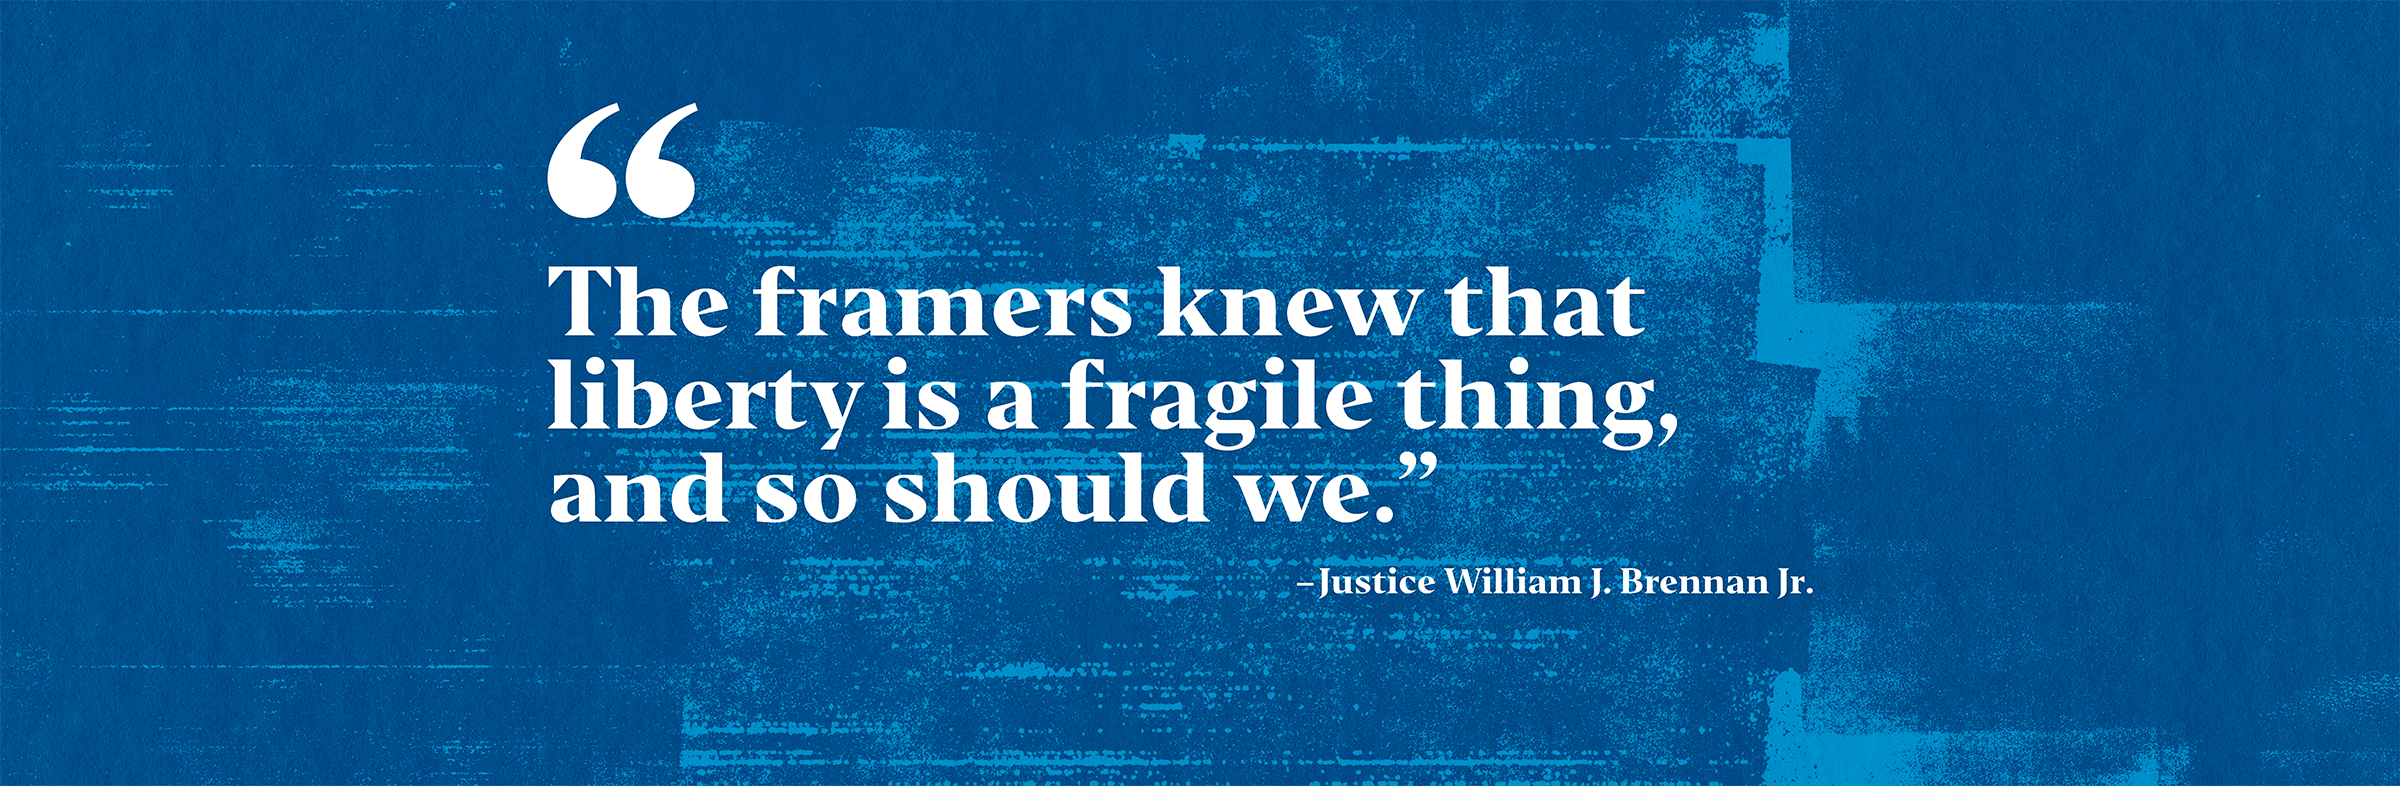 framers quote